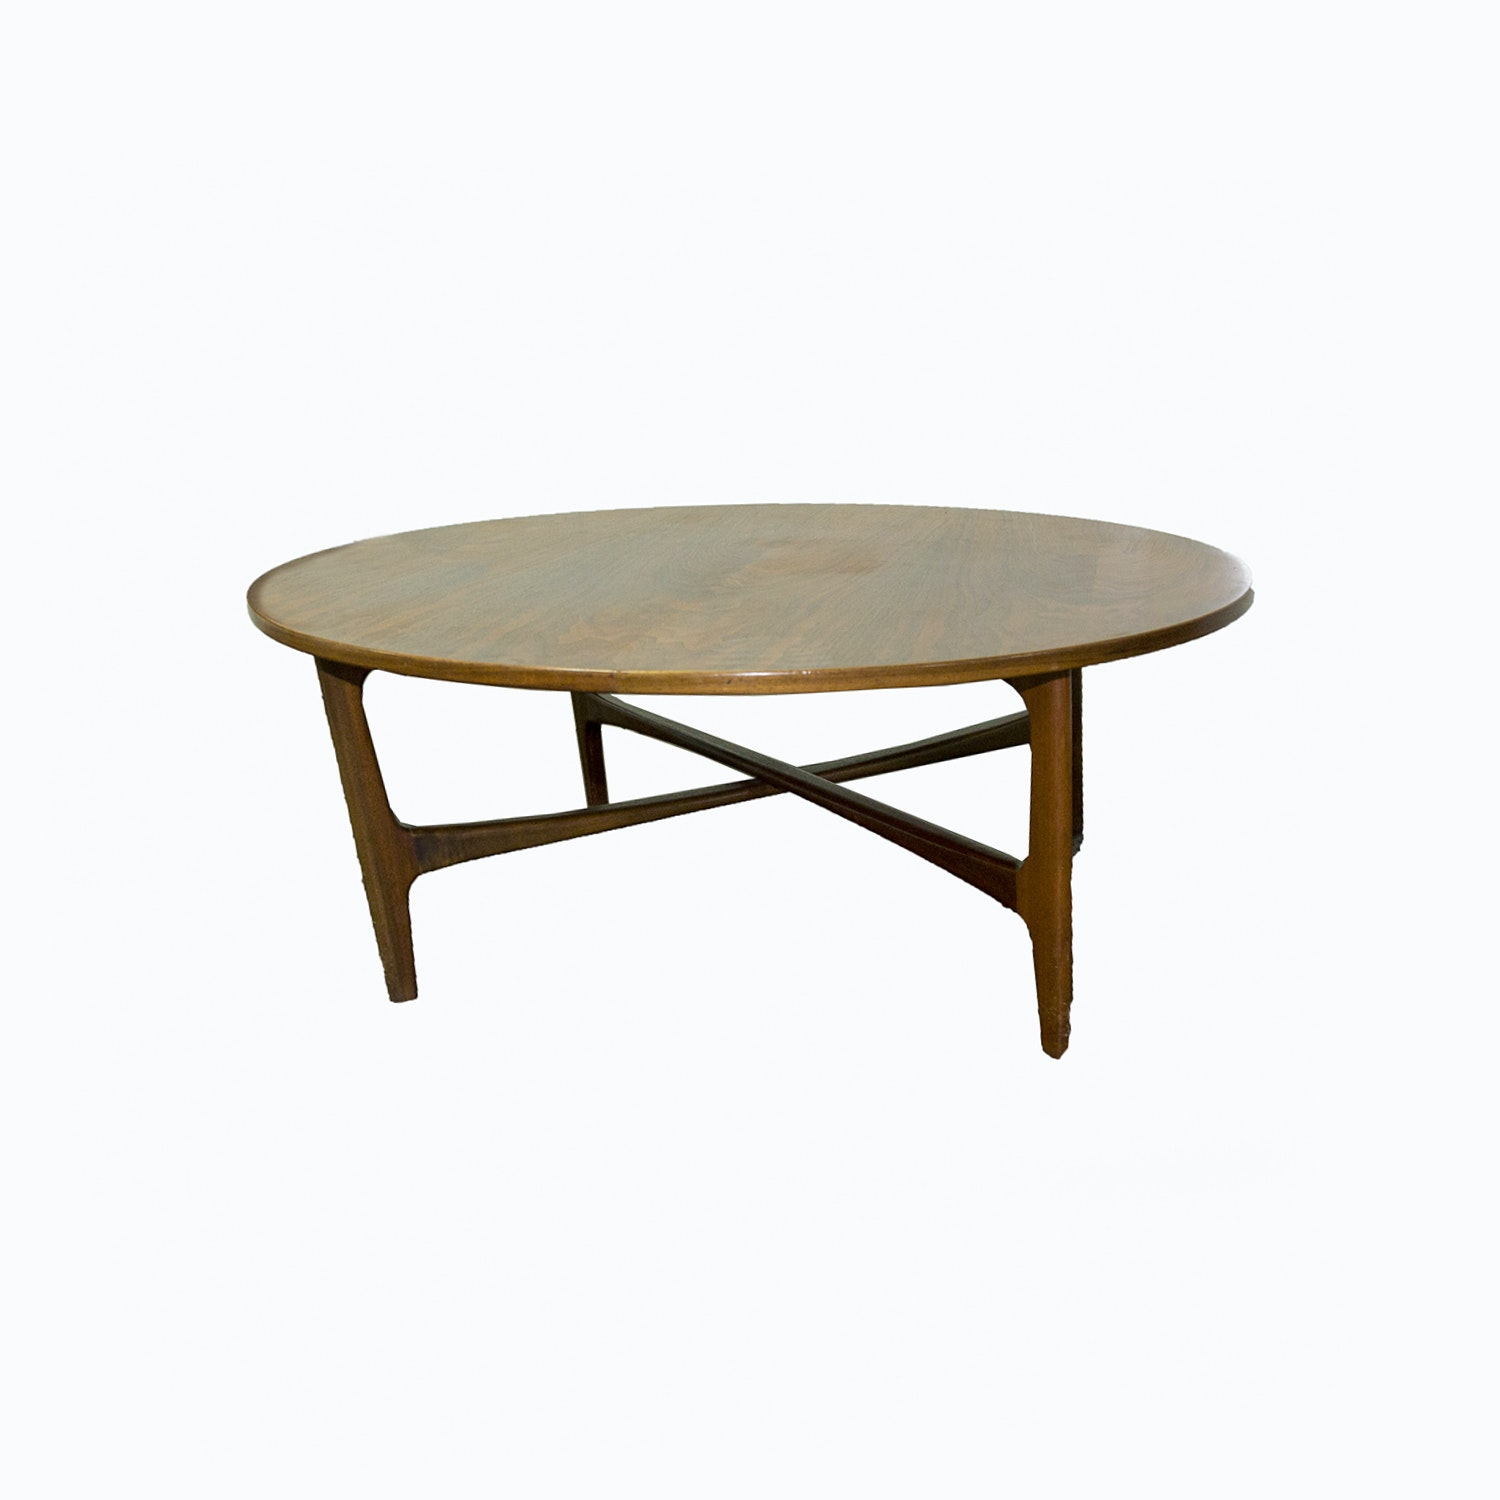 Danish Modern Teak Coffee Table by Dux